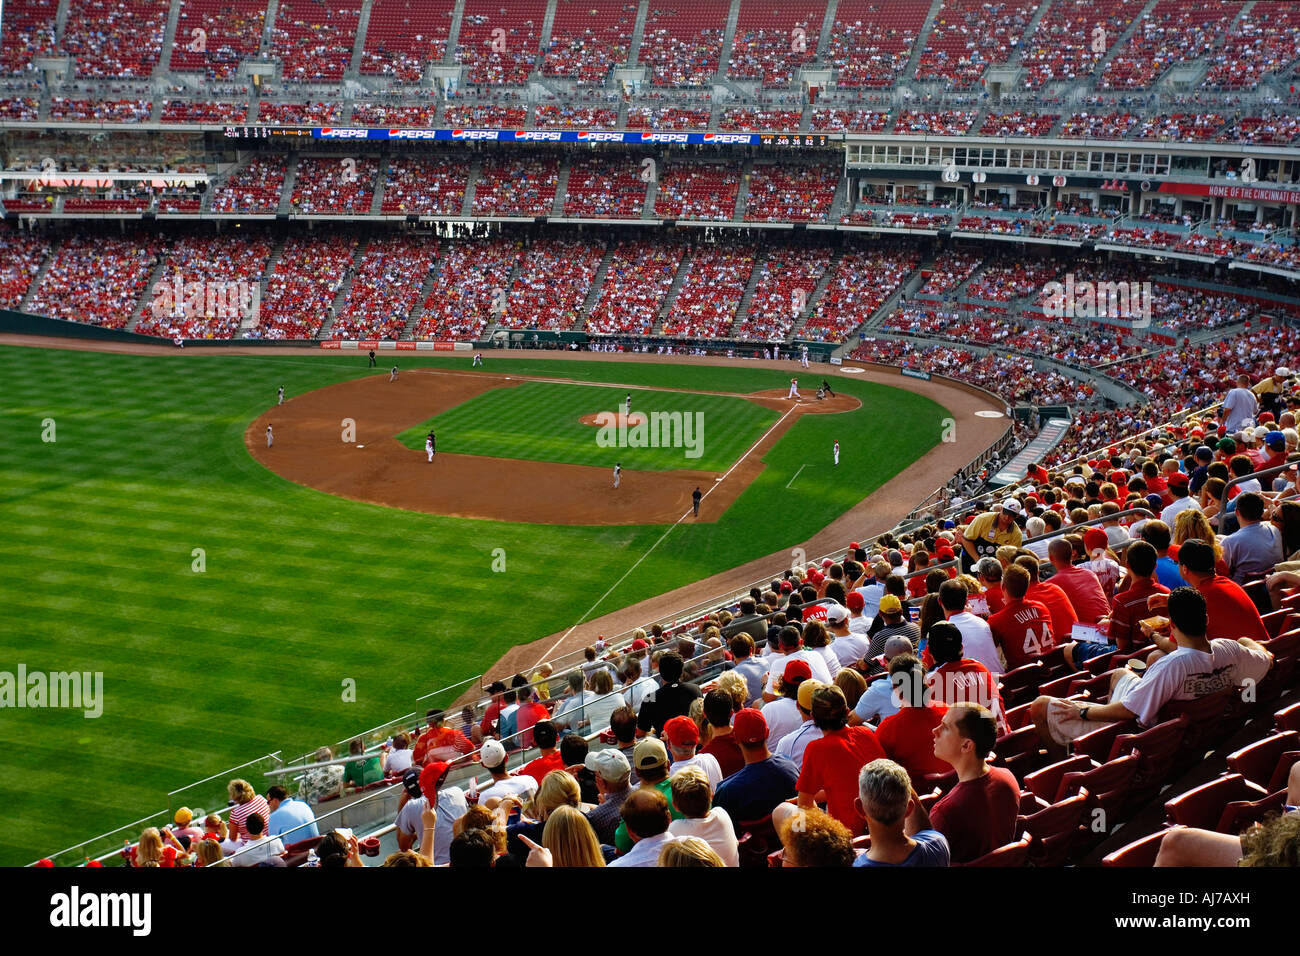 Great American Ballpark home of the Cincinnati Reds filled with fans during the early innings of a game Cincinnati - Stock Image